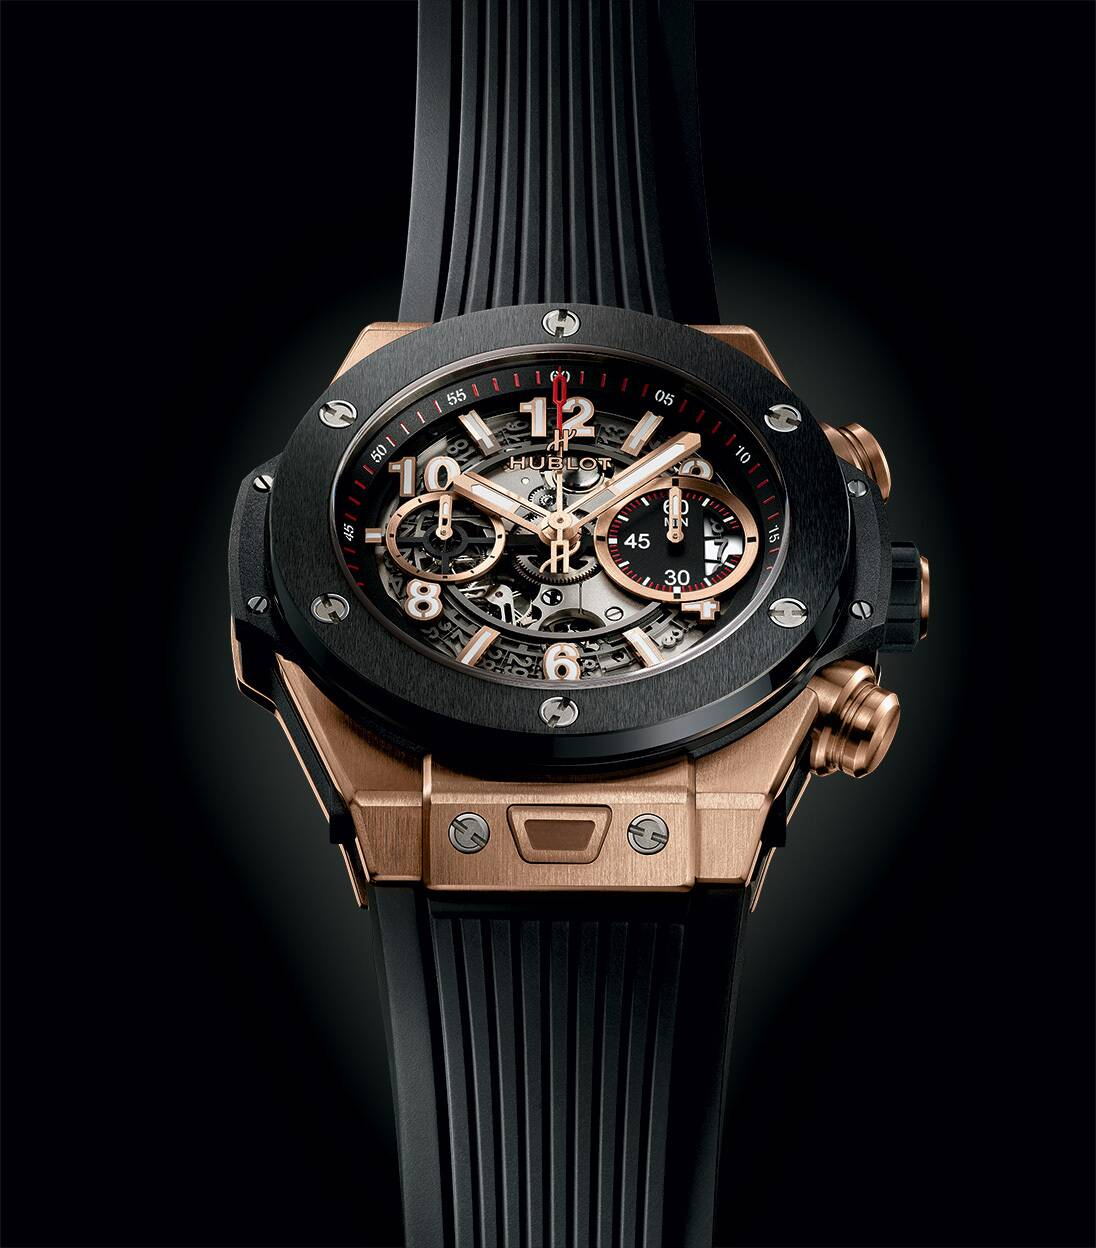 Hublot watchmaking expertise watches jewelry lvmh for Watches hublot